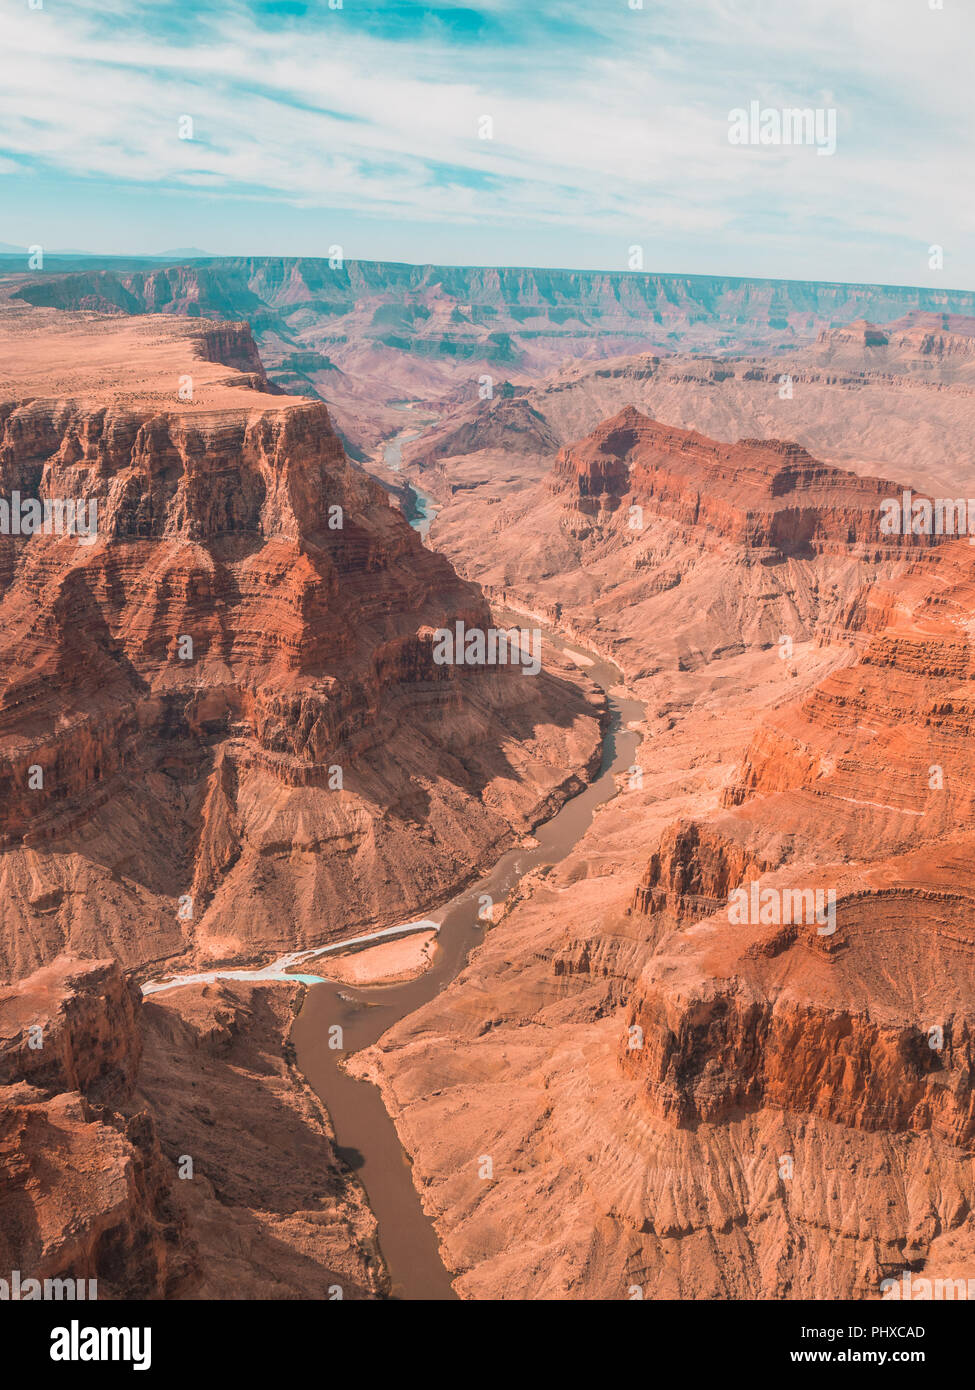 View from helicopter over the grand canyon - Stock Image